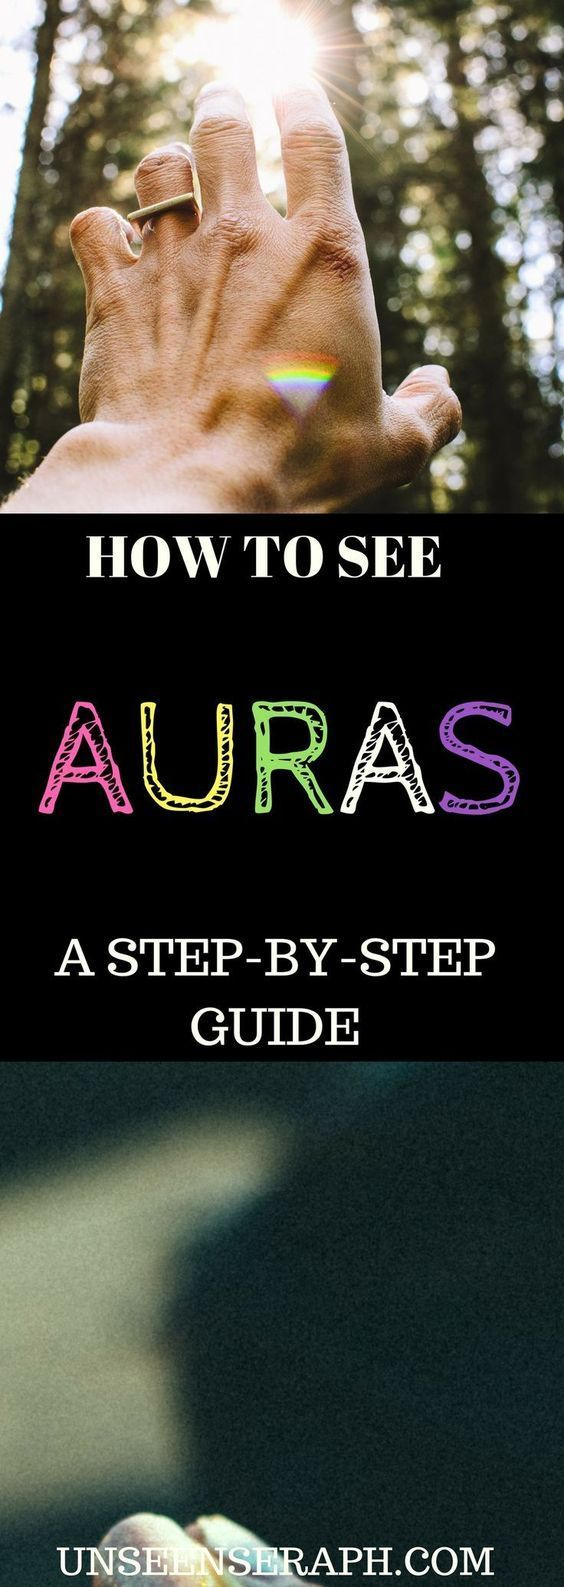 How to See Auras: A Step-By-Step Guide — Unseen Seraph